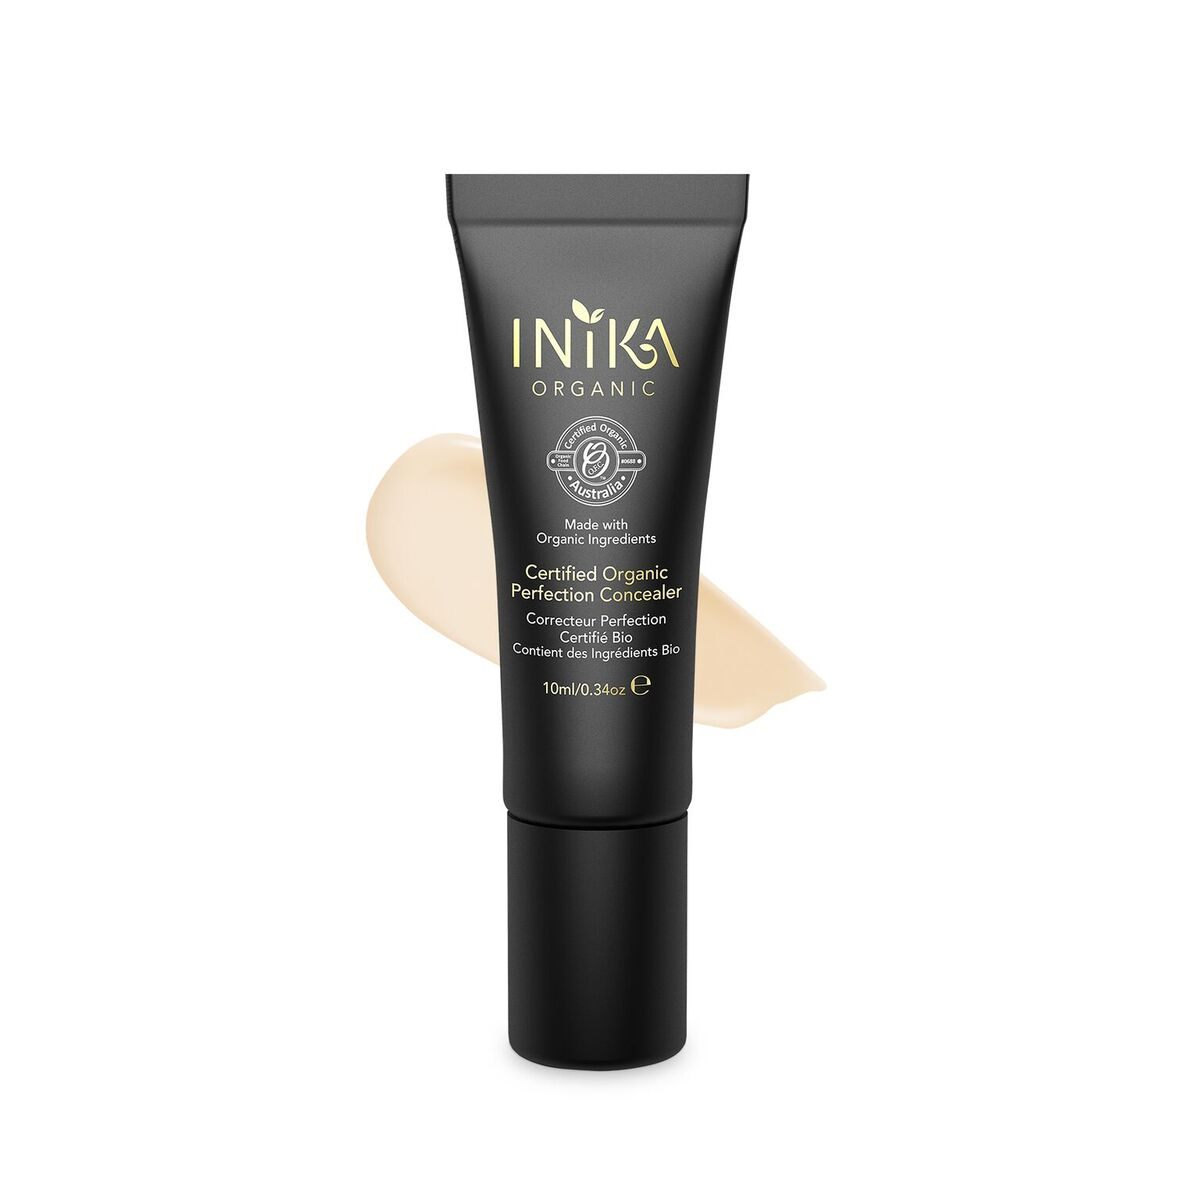 Browse Products Skin Deep Cosmetics Database Ewg Olay Total Effects Day Cream Normal Spf 15 8g Inika Certified Organic Perfection Concealer Very Light